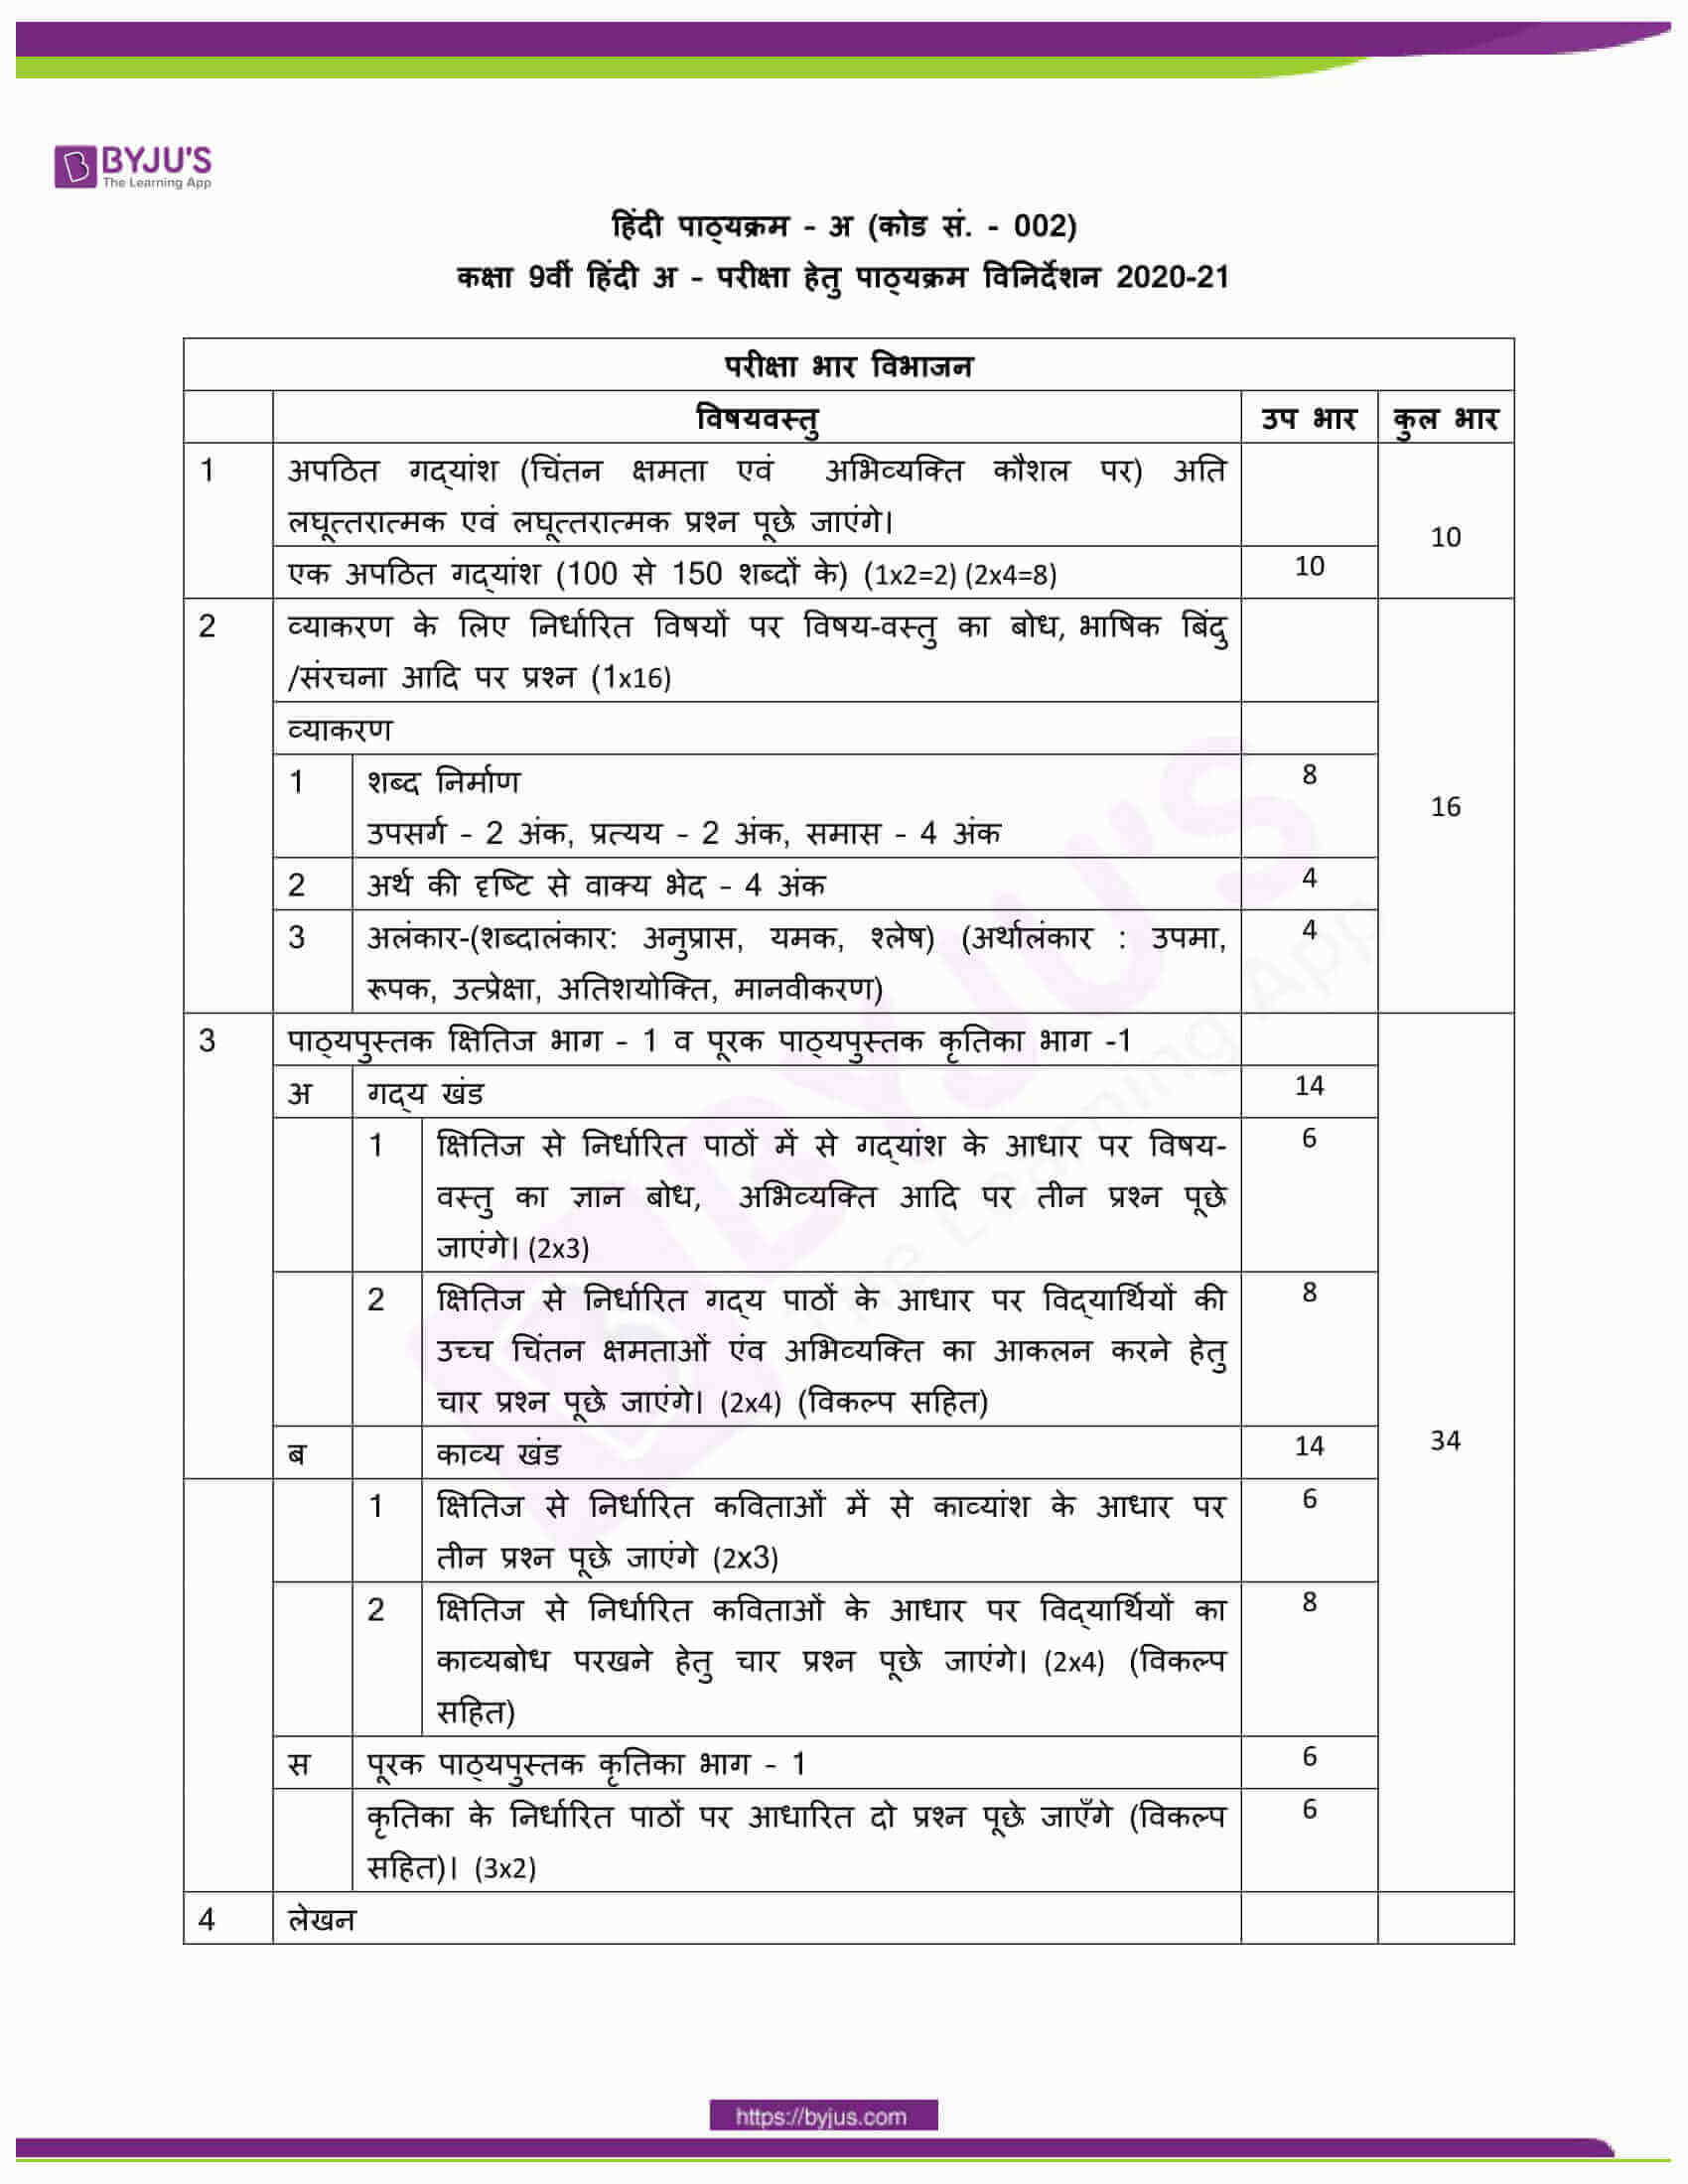 CBSE Class 10 Hindi Course A Revised Syllabus 2020 21 08